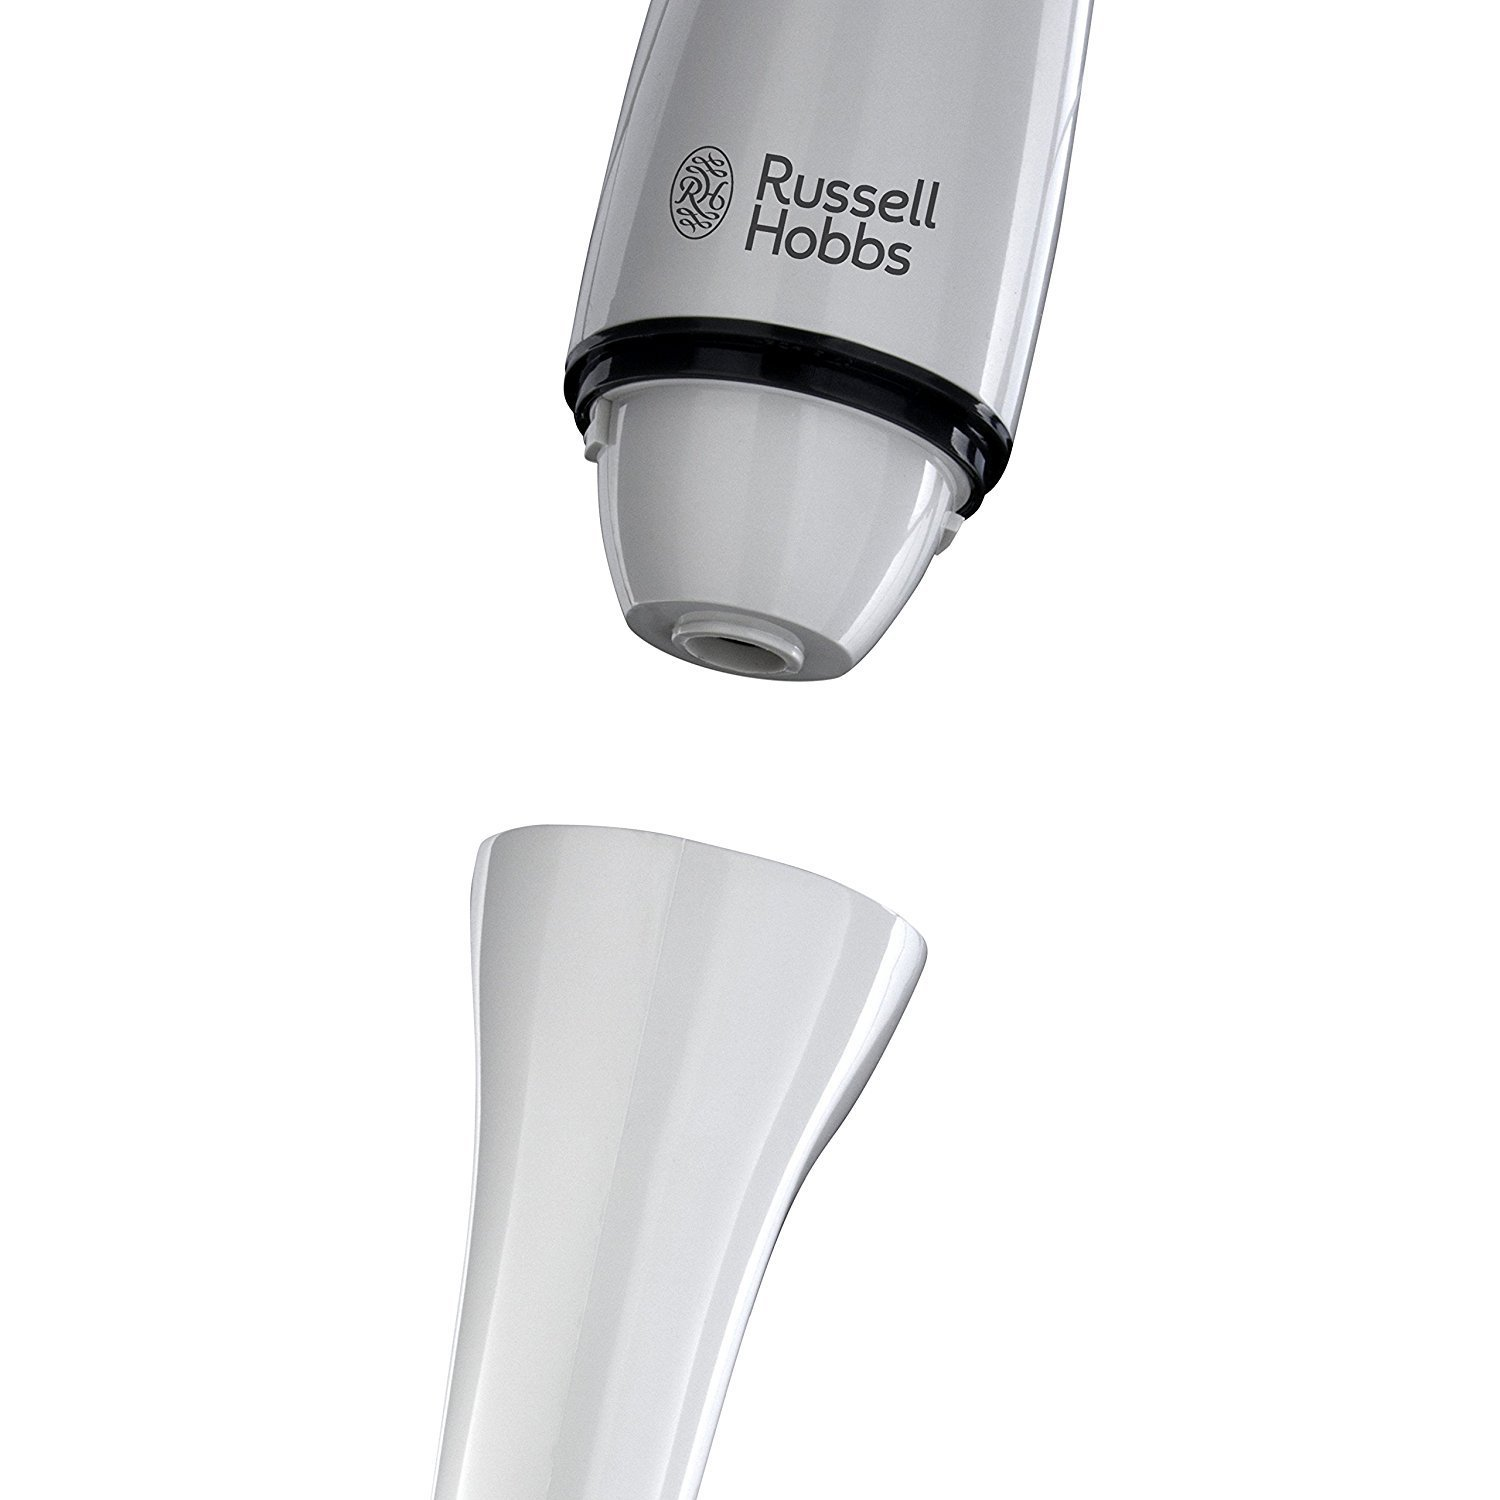 Russell Hobbs Food Collection Hand Blender 22241, 200 W - White